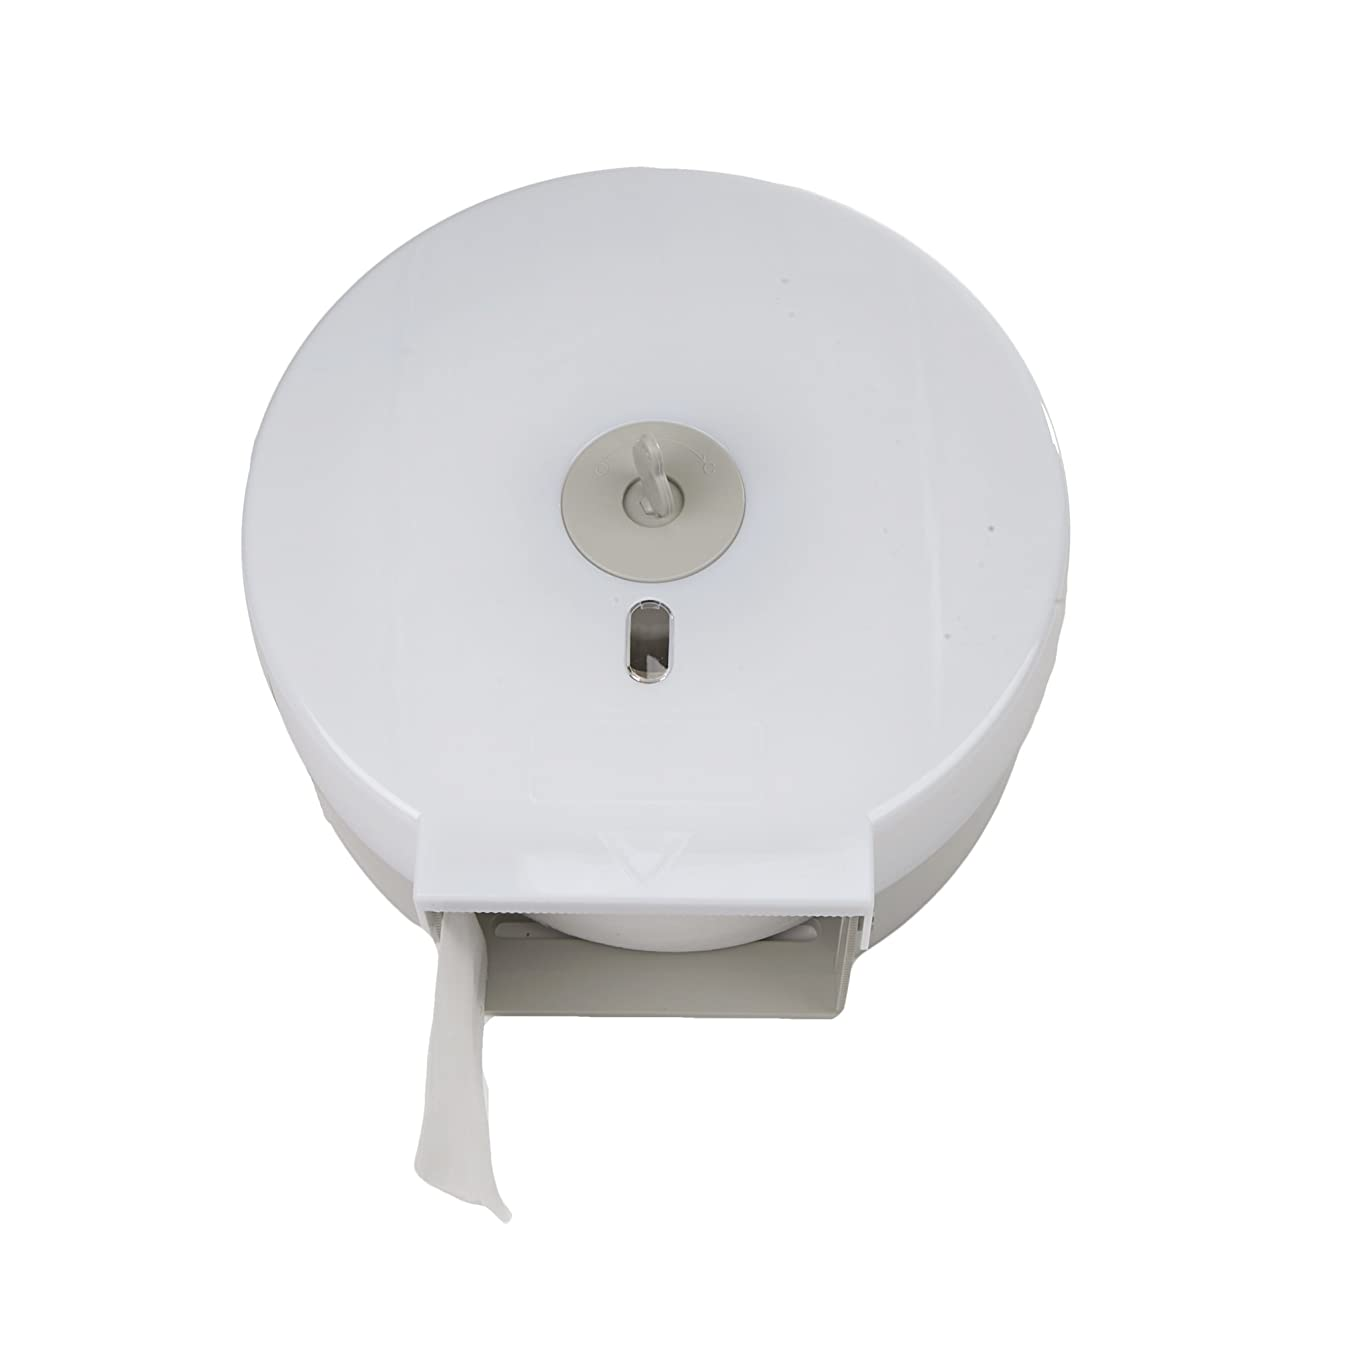 Mind Reader Commercial Bathroom Tissue Dispenser, Wall Mount Tissue Holder for Professional Bathroom 10.25 in. L x 4.88 in. W x 10.5 in. H